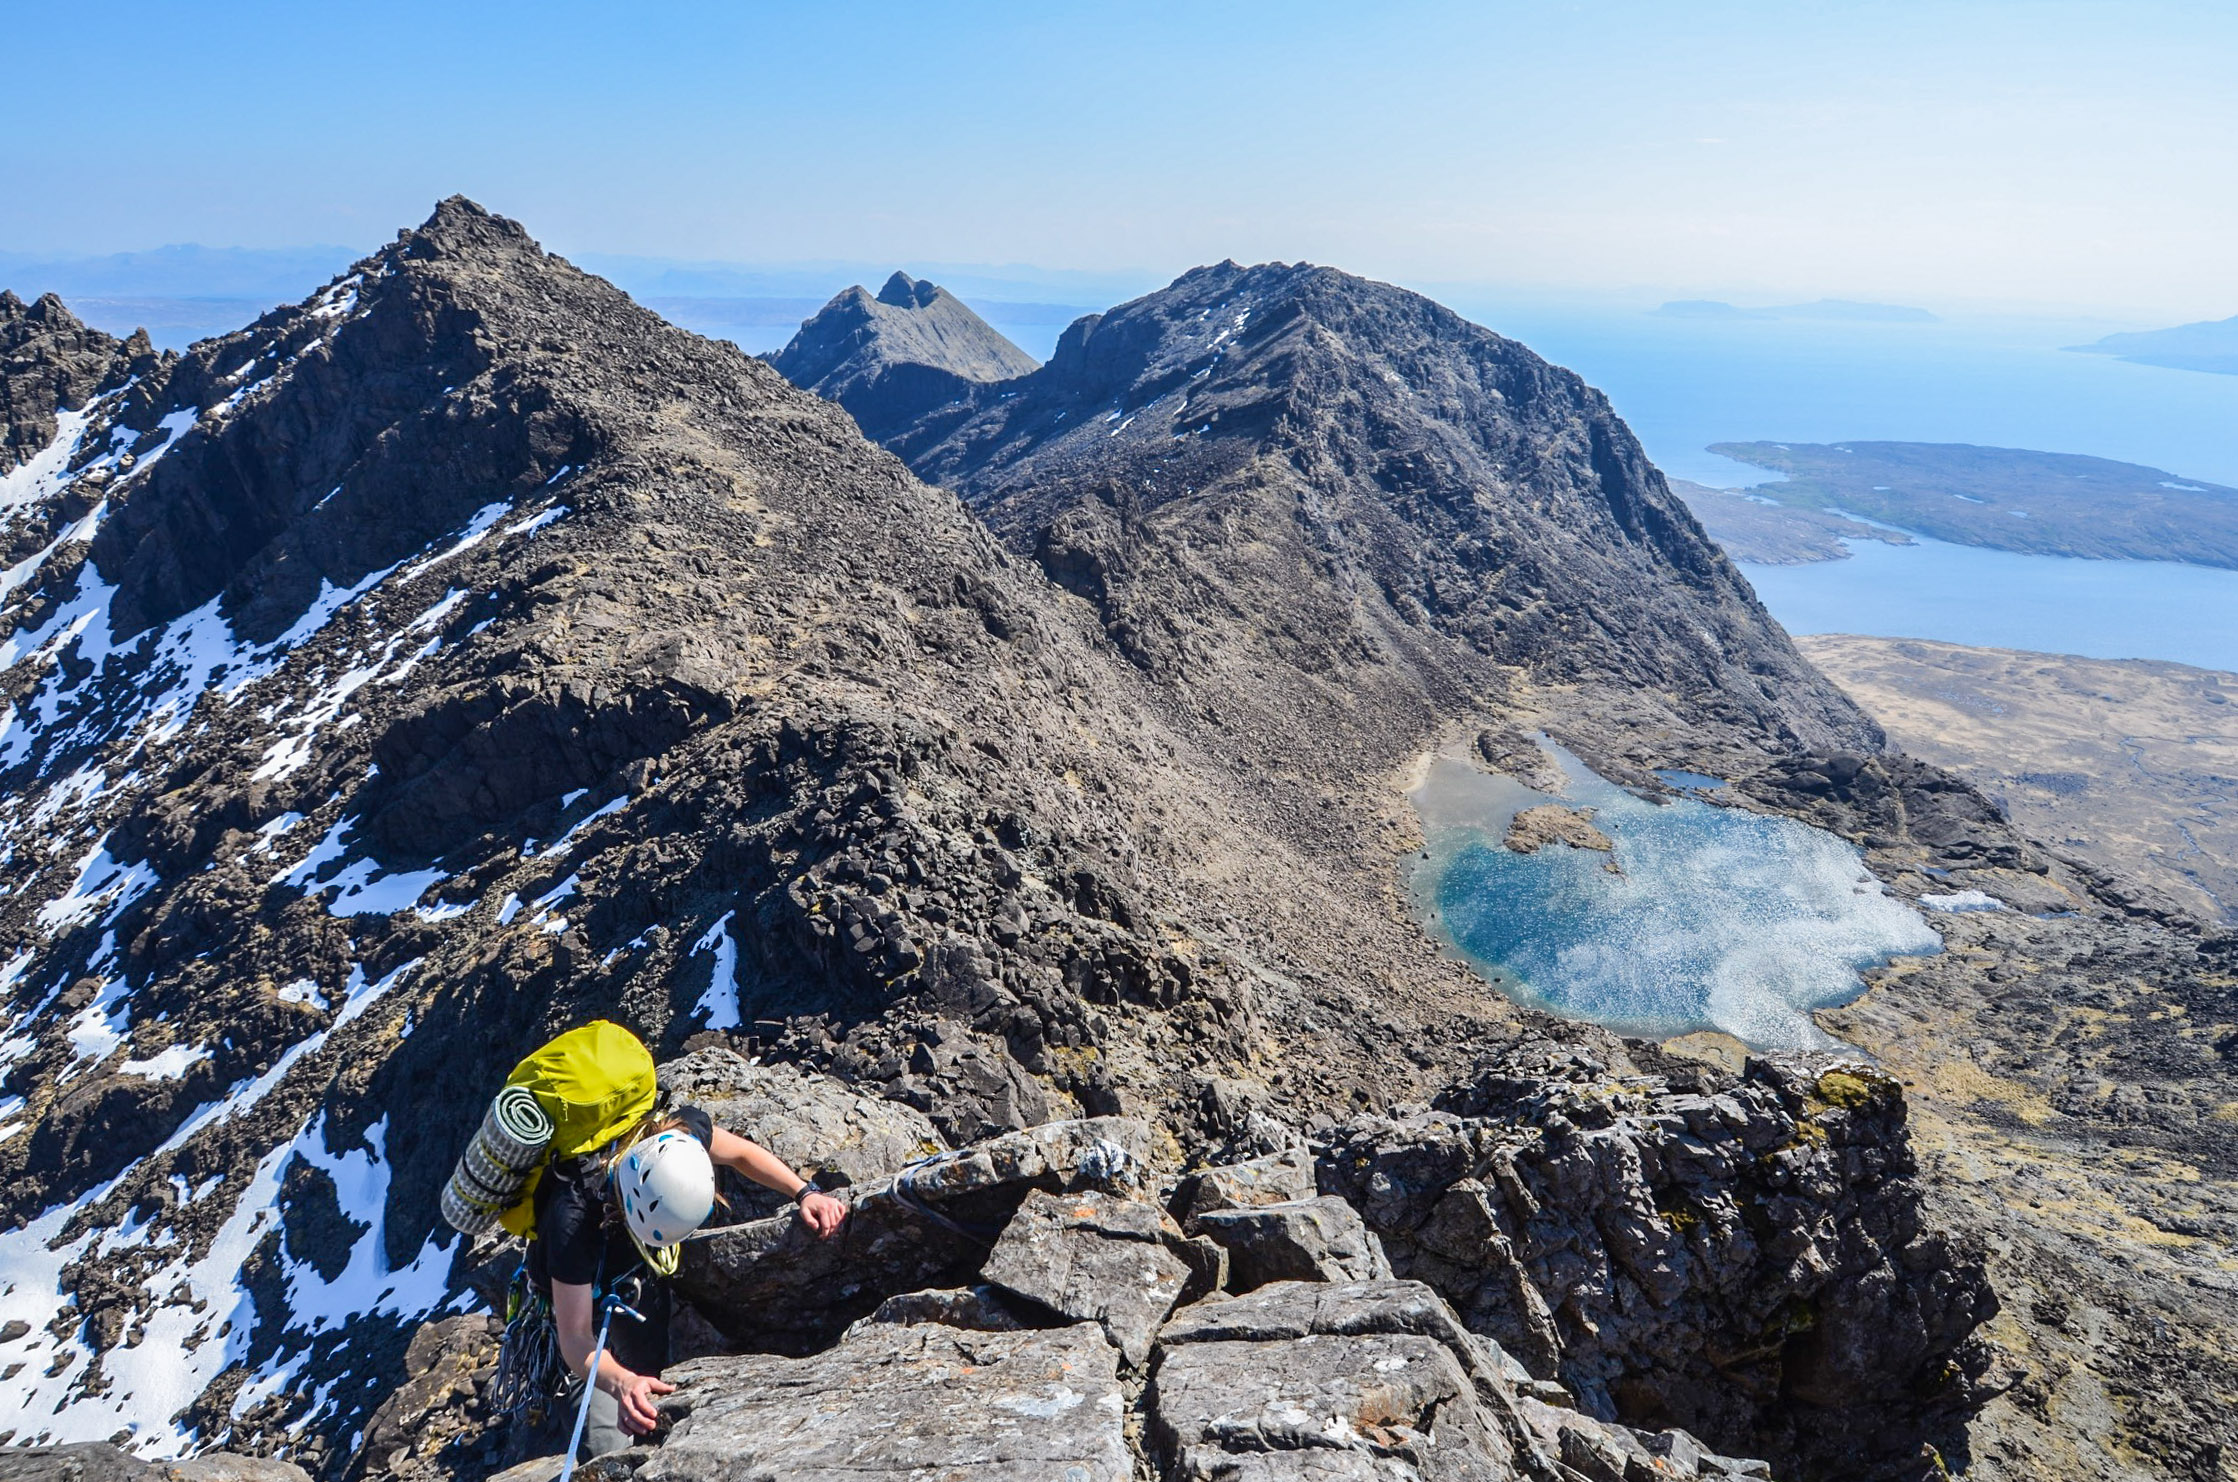 Mairi topping out on the notorious TD Gap